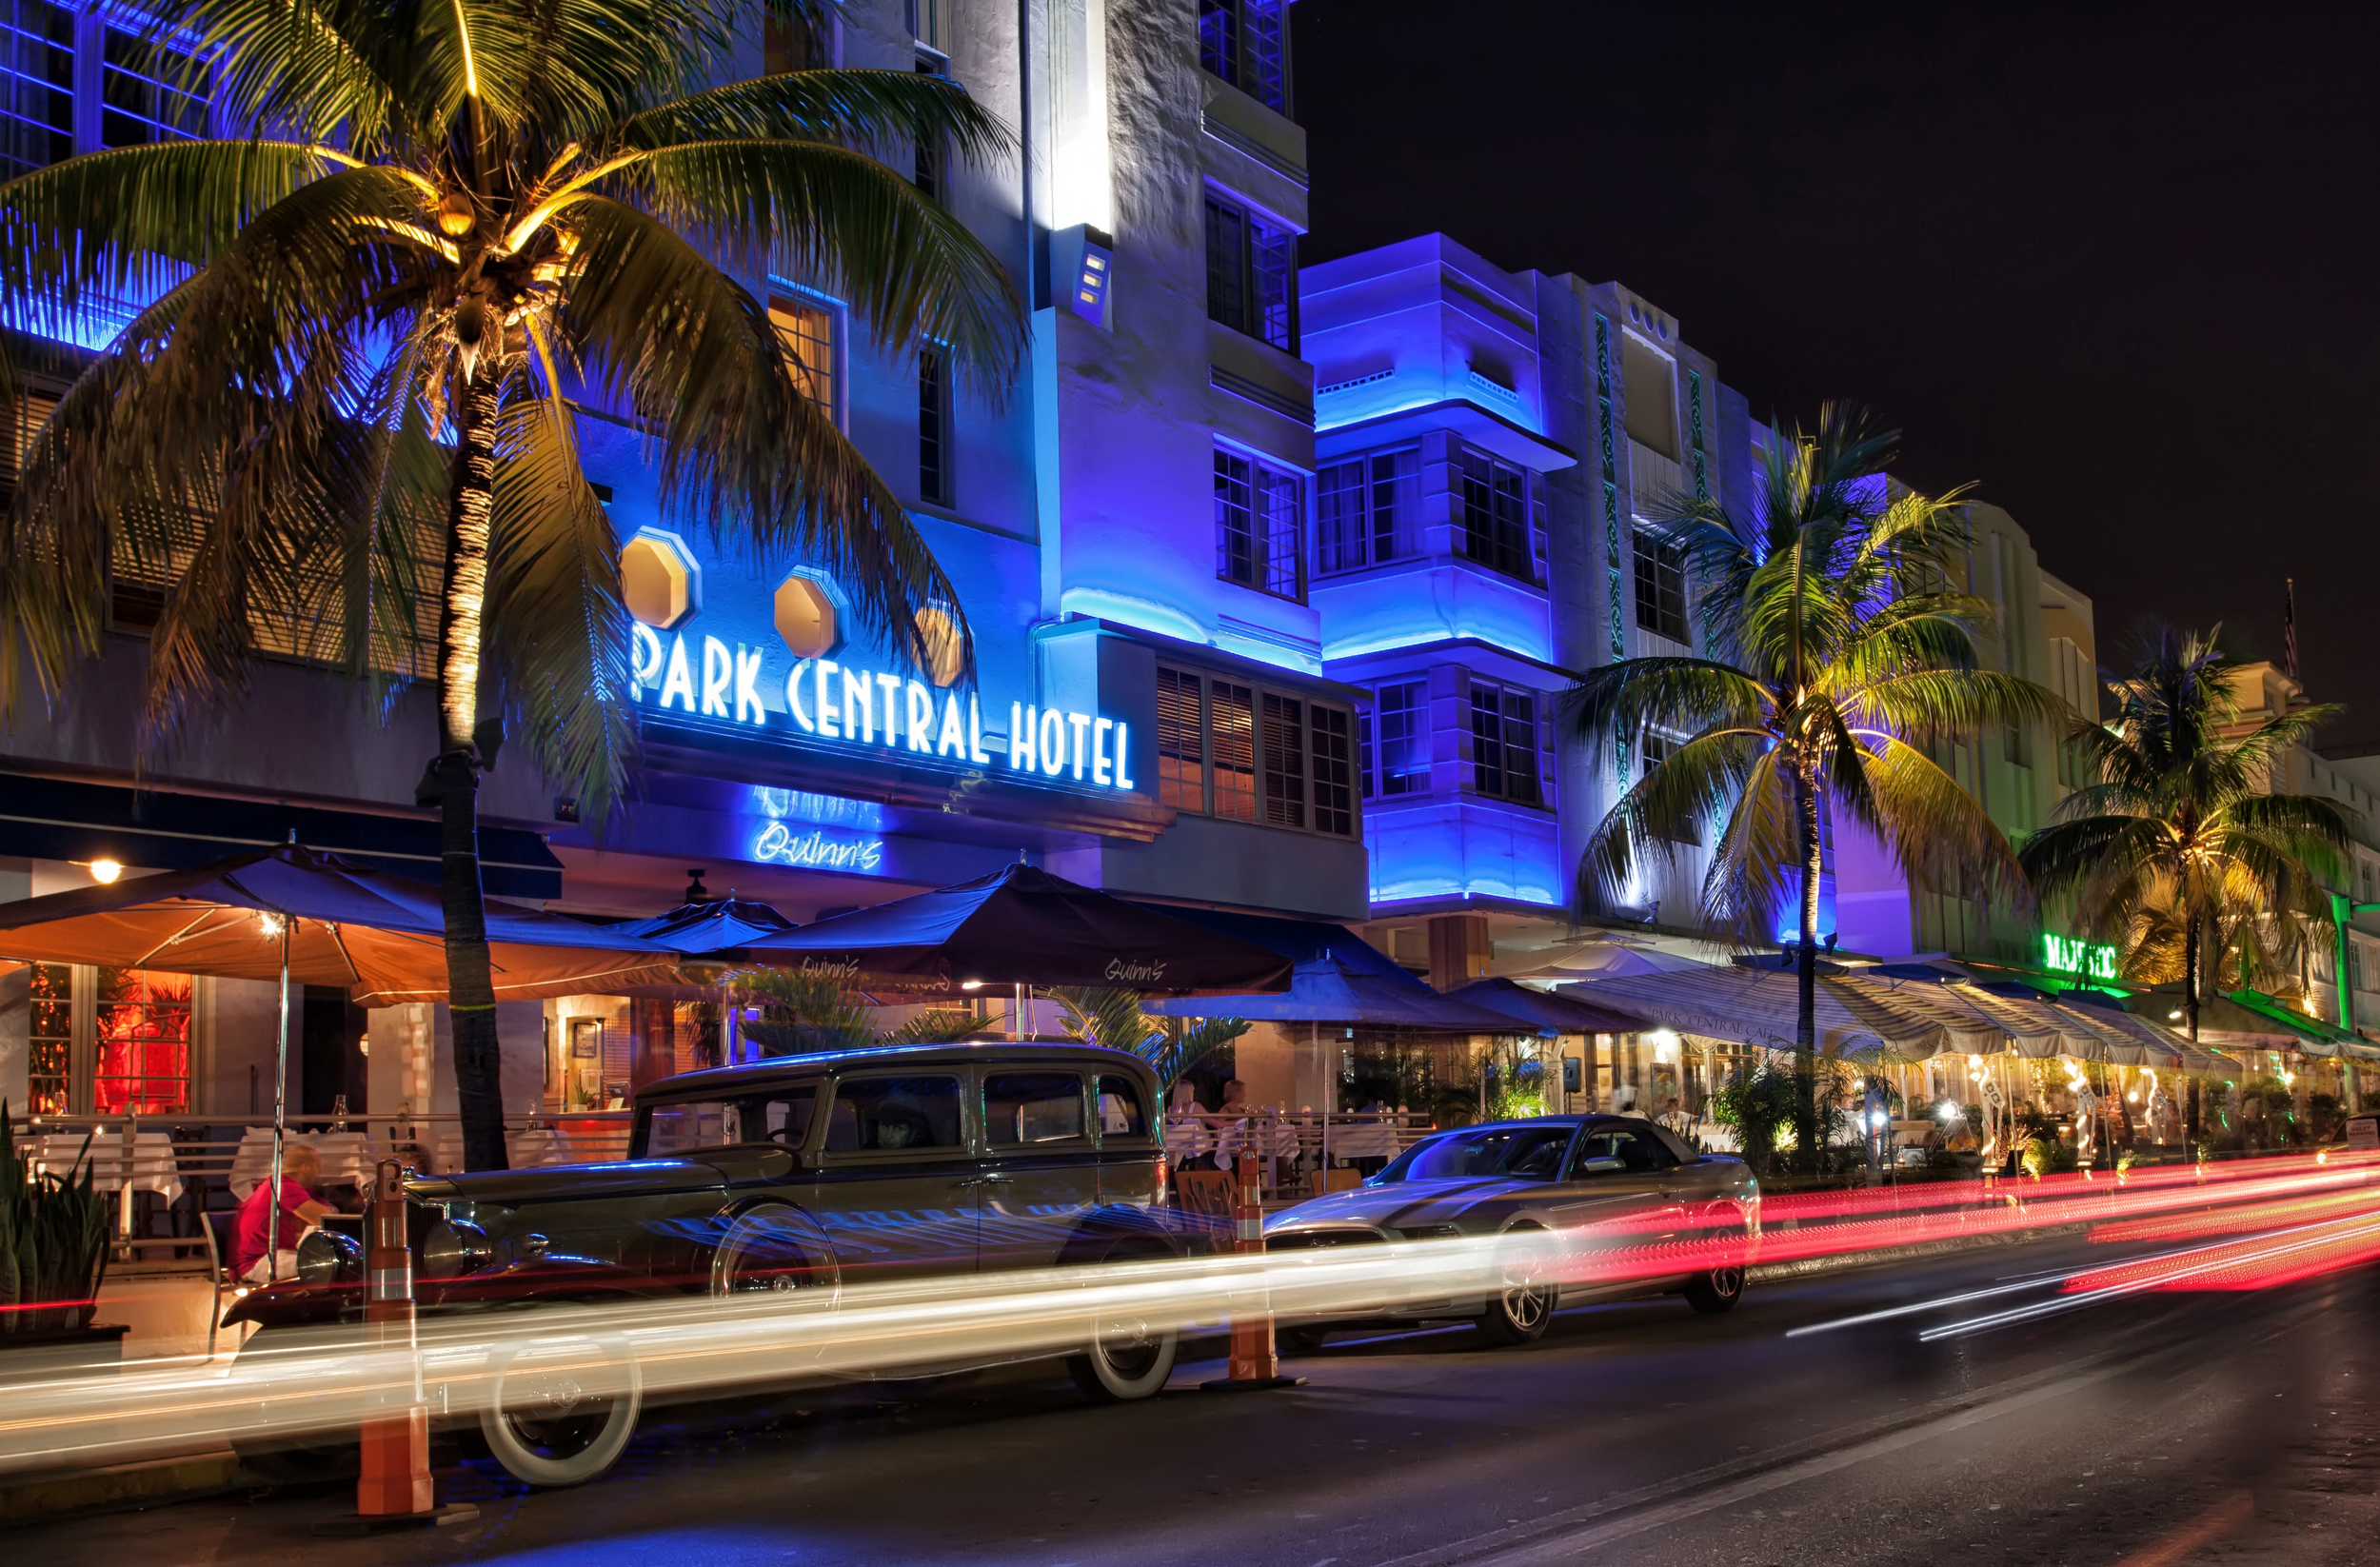 Park Central Hotel, South Beach, Miami - Built in 1937, renovated in 1988